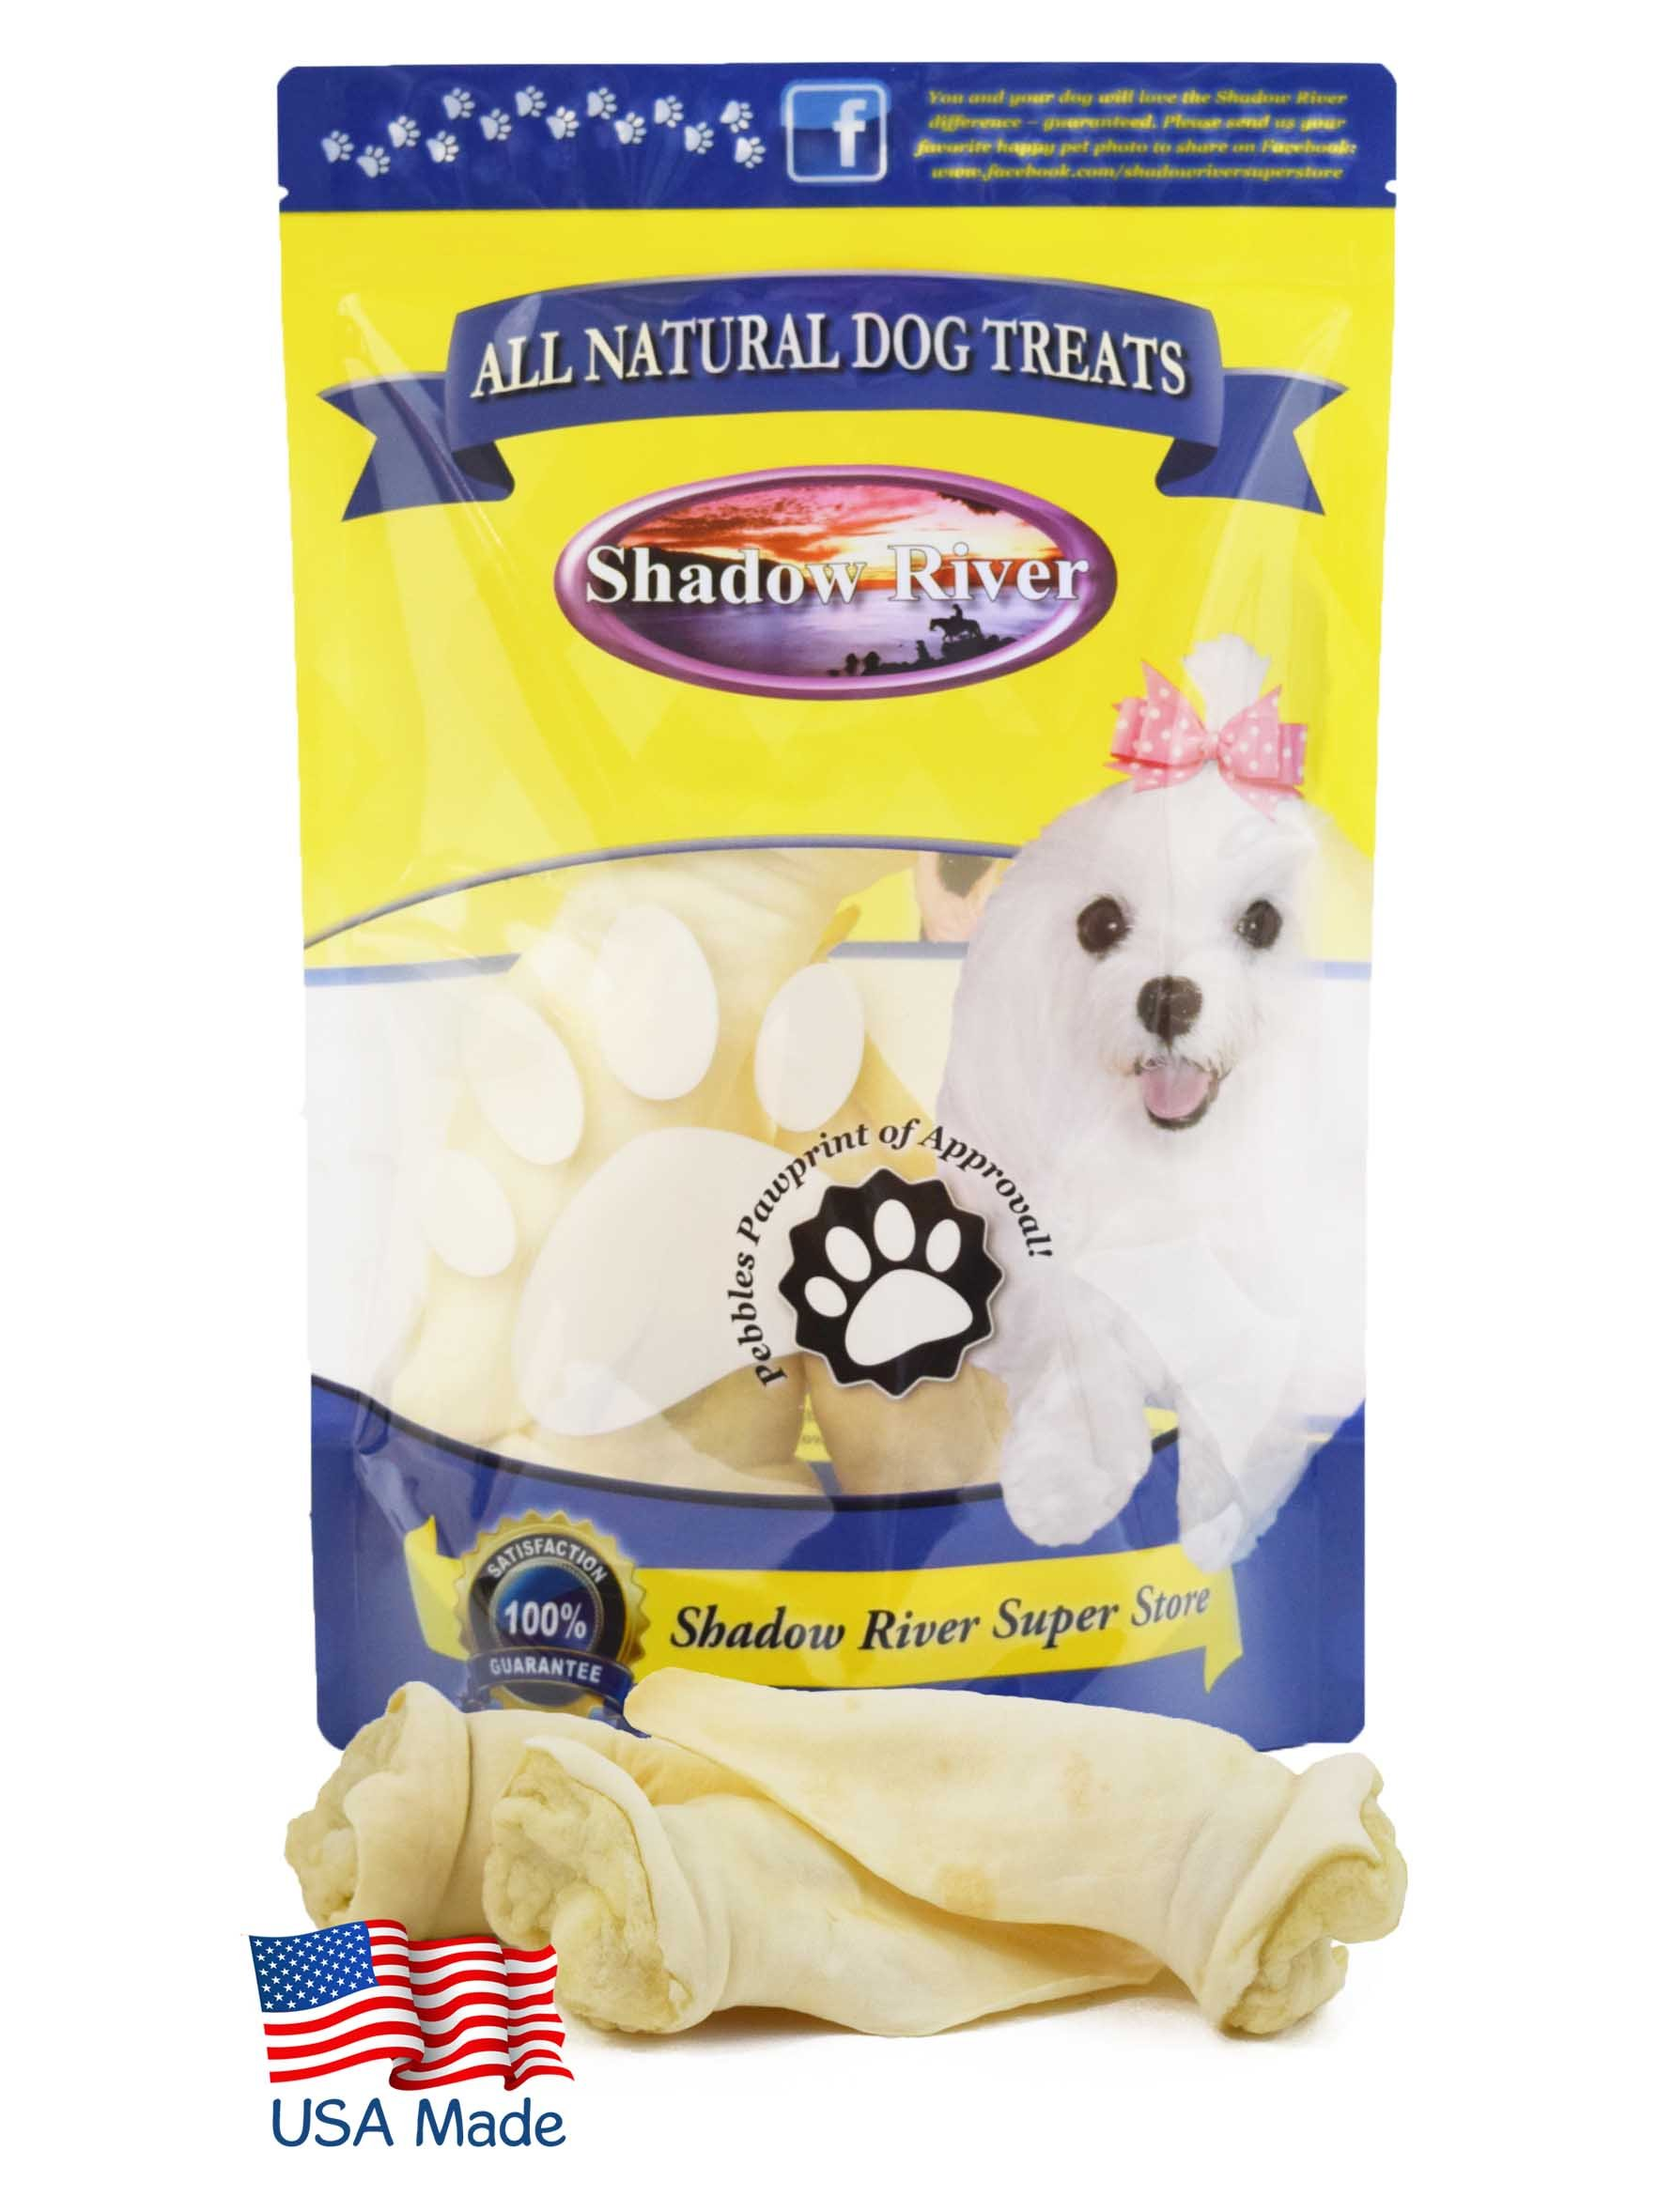 Shadow River Lamb Ear Chews for Dogs - Premium All Natural Treats - 20 Pack Large Full Size Ears